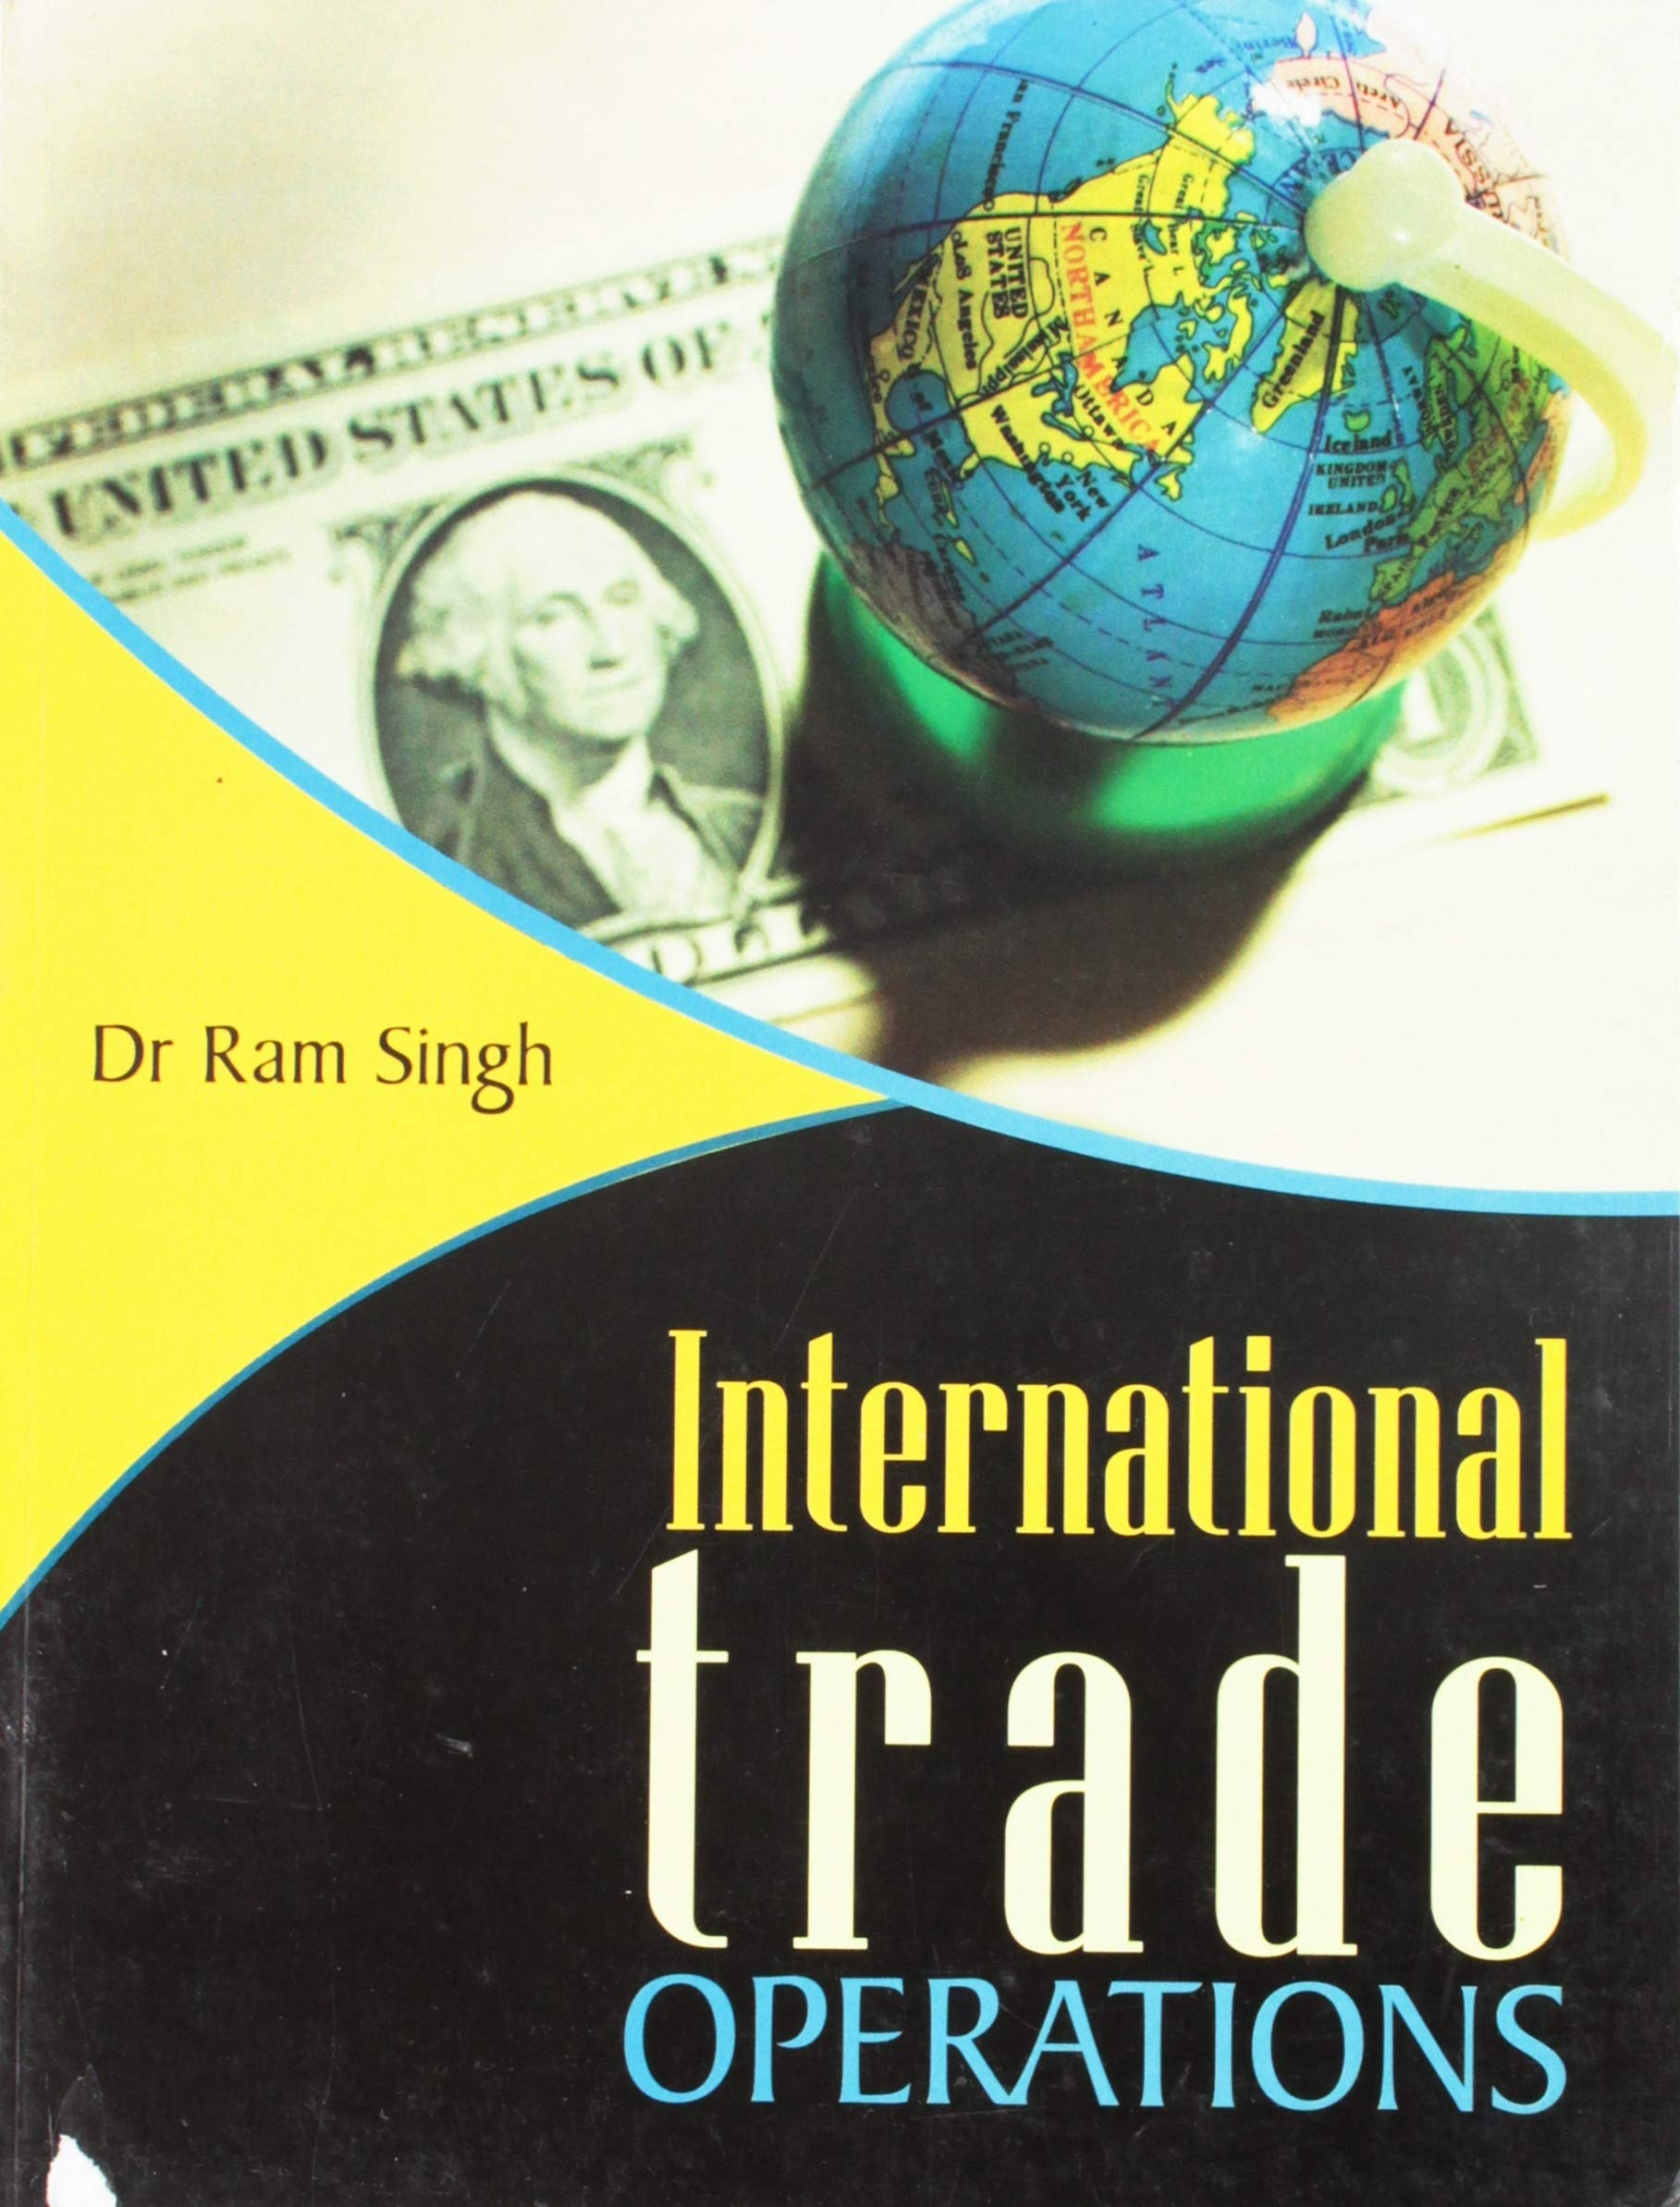 Buy International Trade Operations Book Online at Low Prices